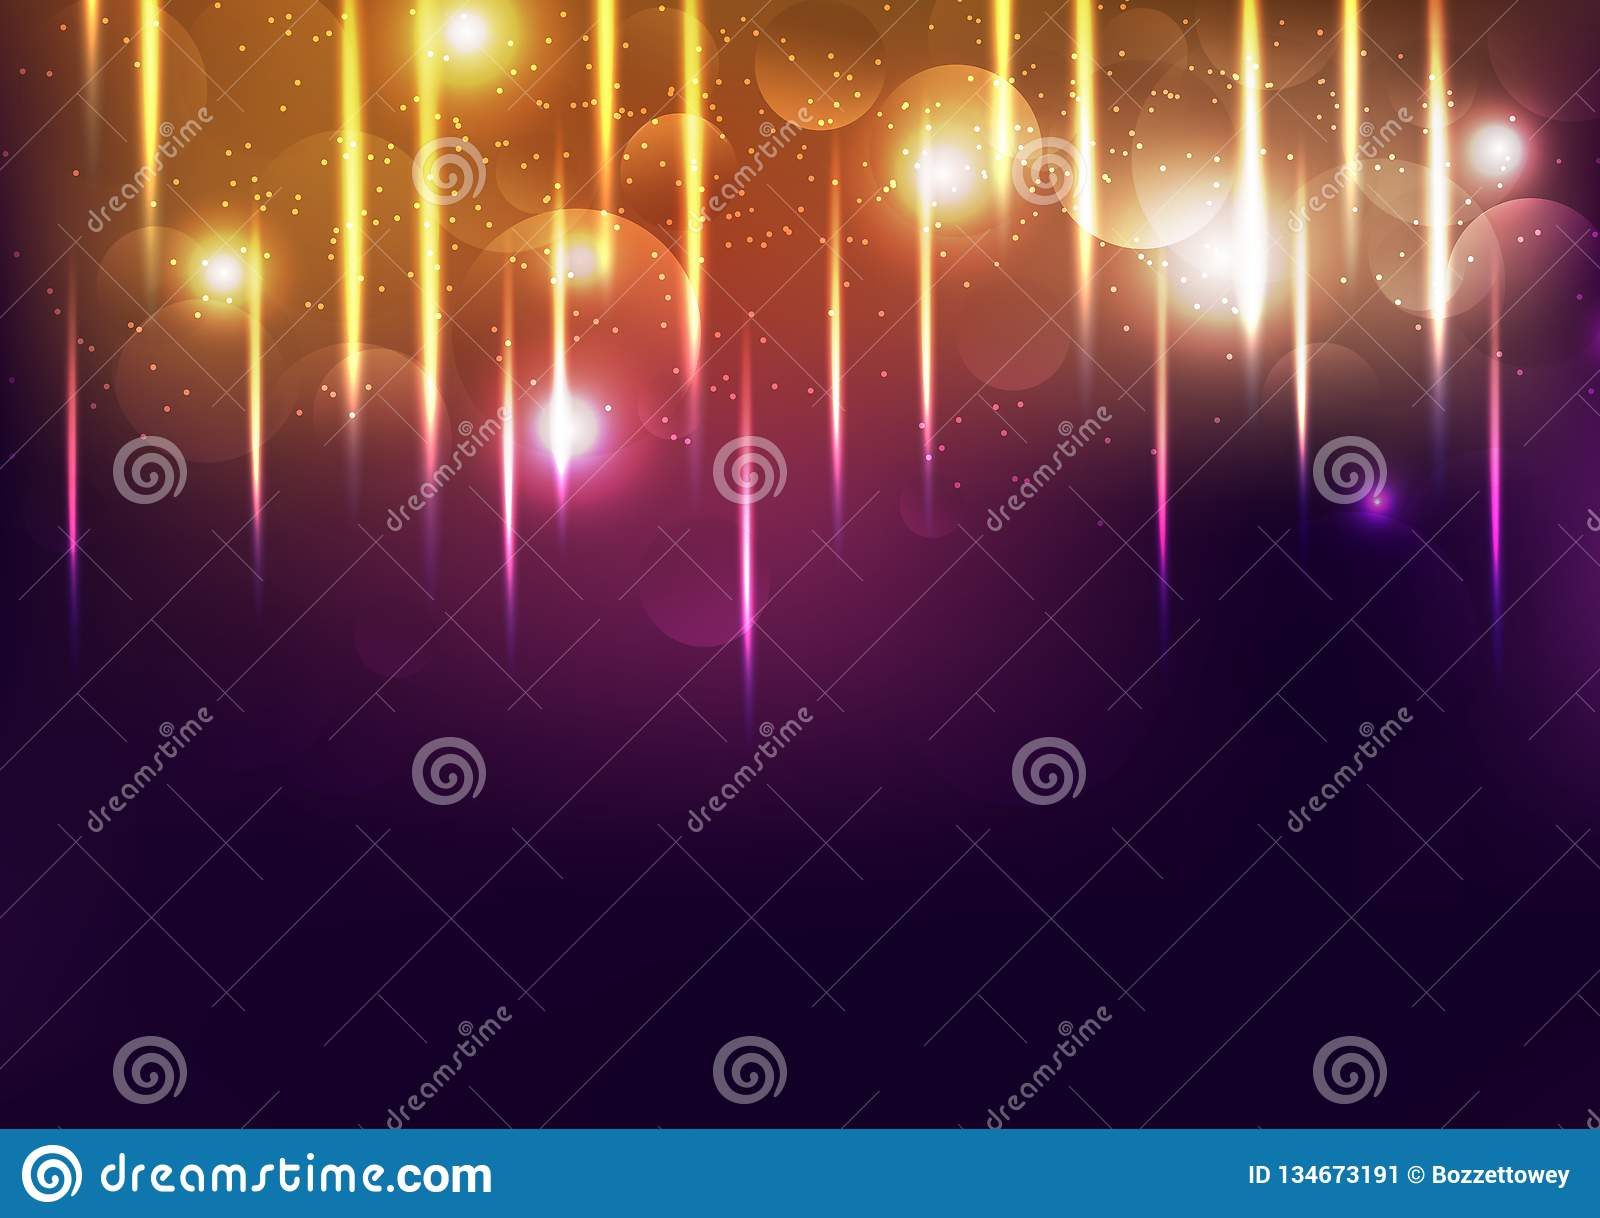 Celebration gold light, shiny festival, explosion glowing confetti fall, dust and grainy abstract background vector illustration